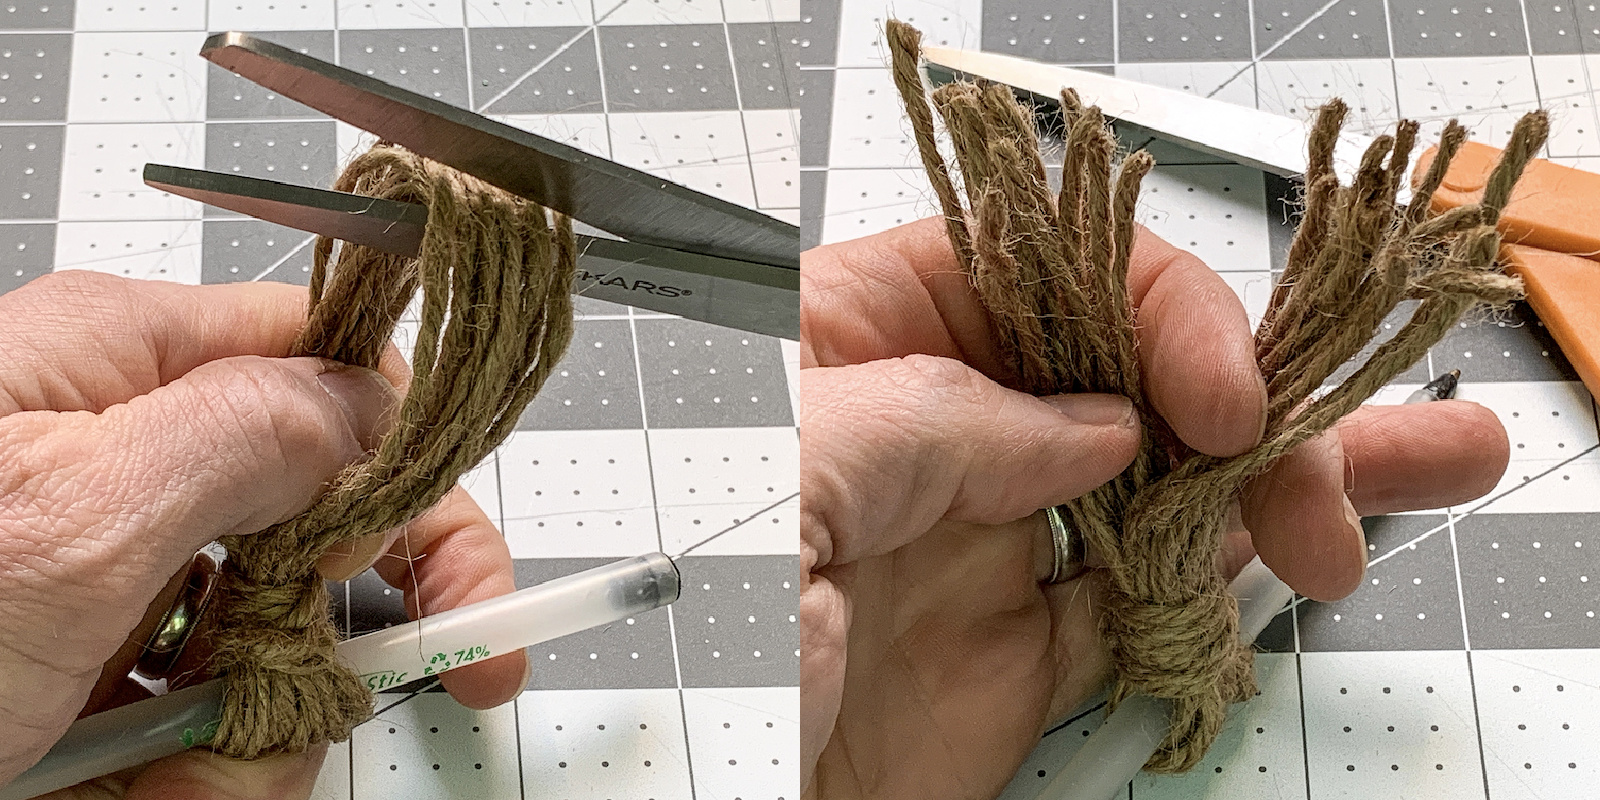 Cutting the end of a twine loop with scissors to make a tassel